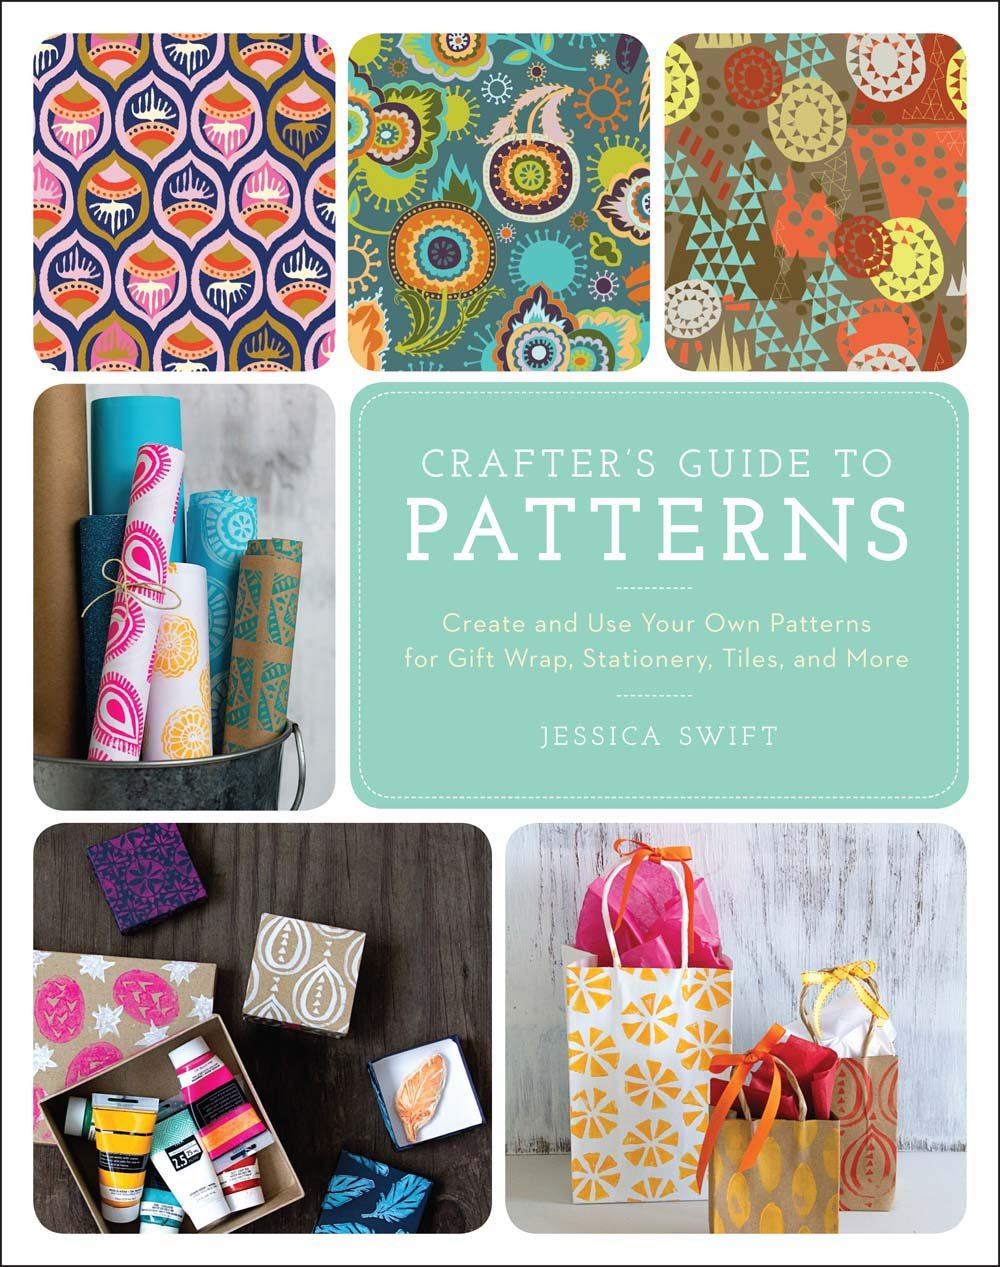 The Crafter's Guide to Patterns: Create and Use Your Own Patterns for Gift Wrap, Stationary, Tiles, and More pdf